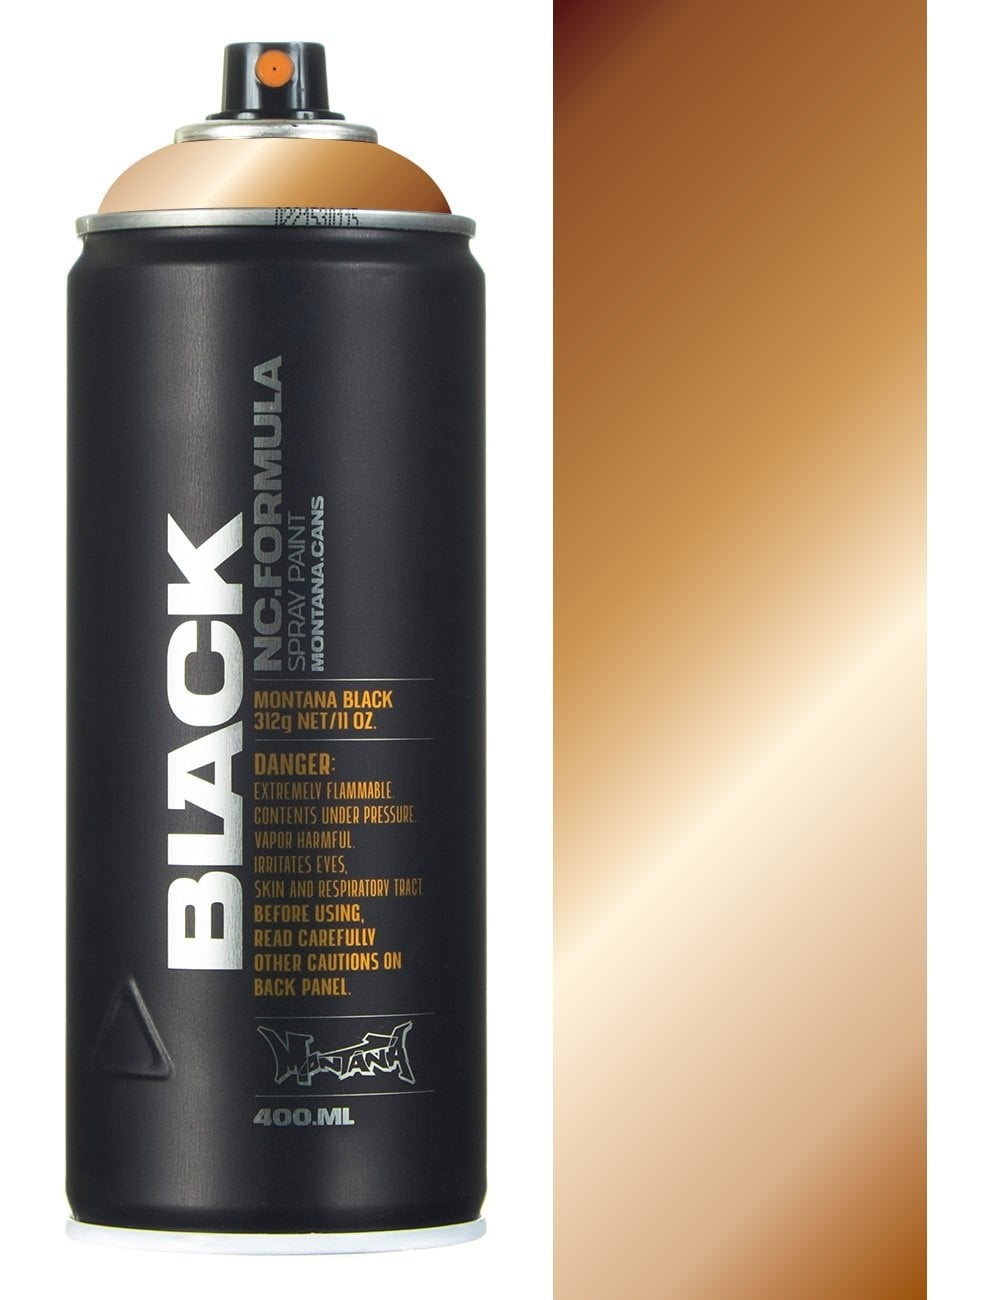 Montana Black Copper Chrome Spray Paint 400ml Spray Paint Supplies From Fat Buddha Store Uk